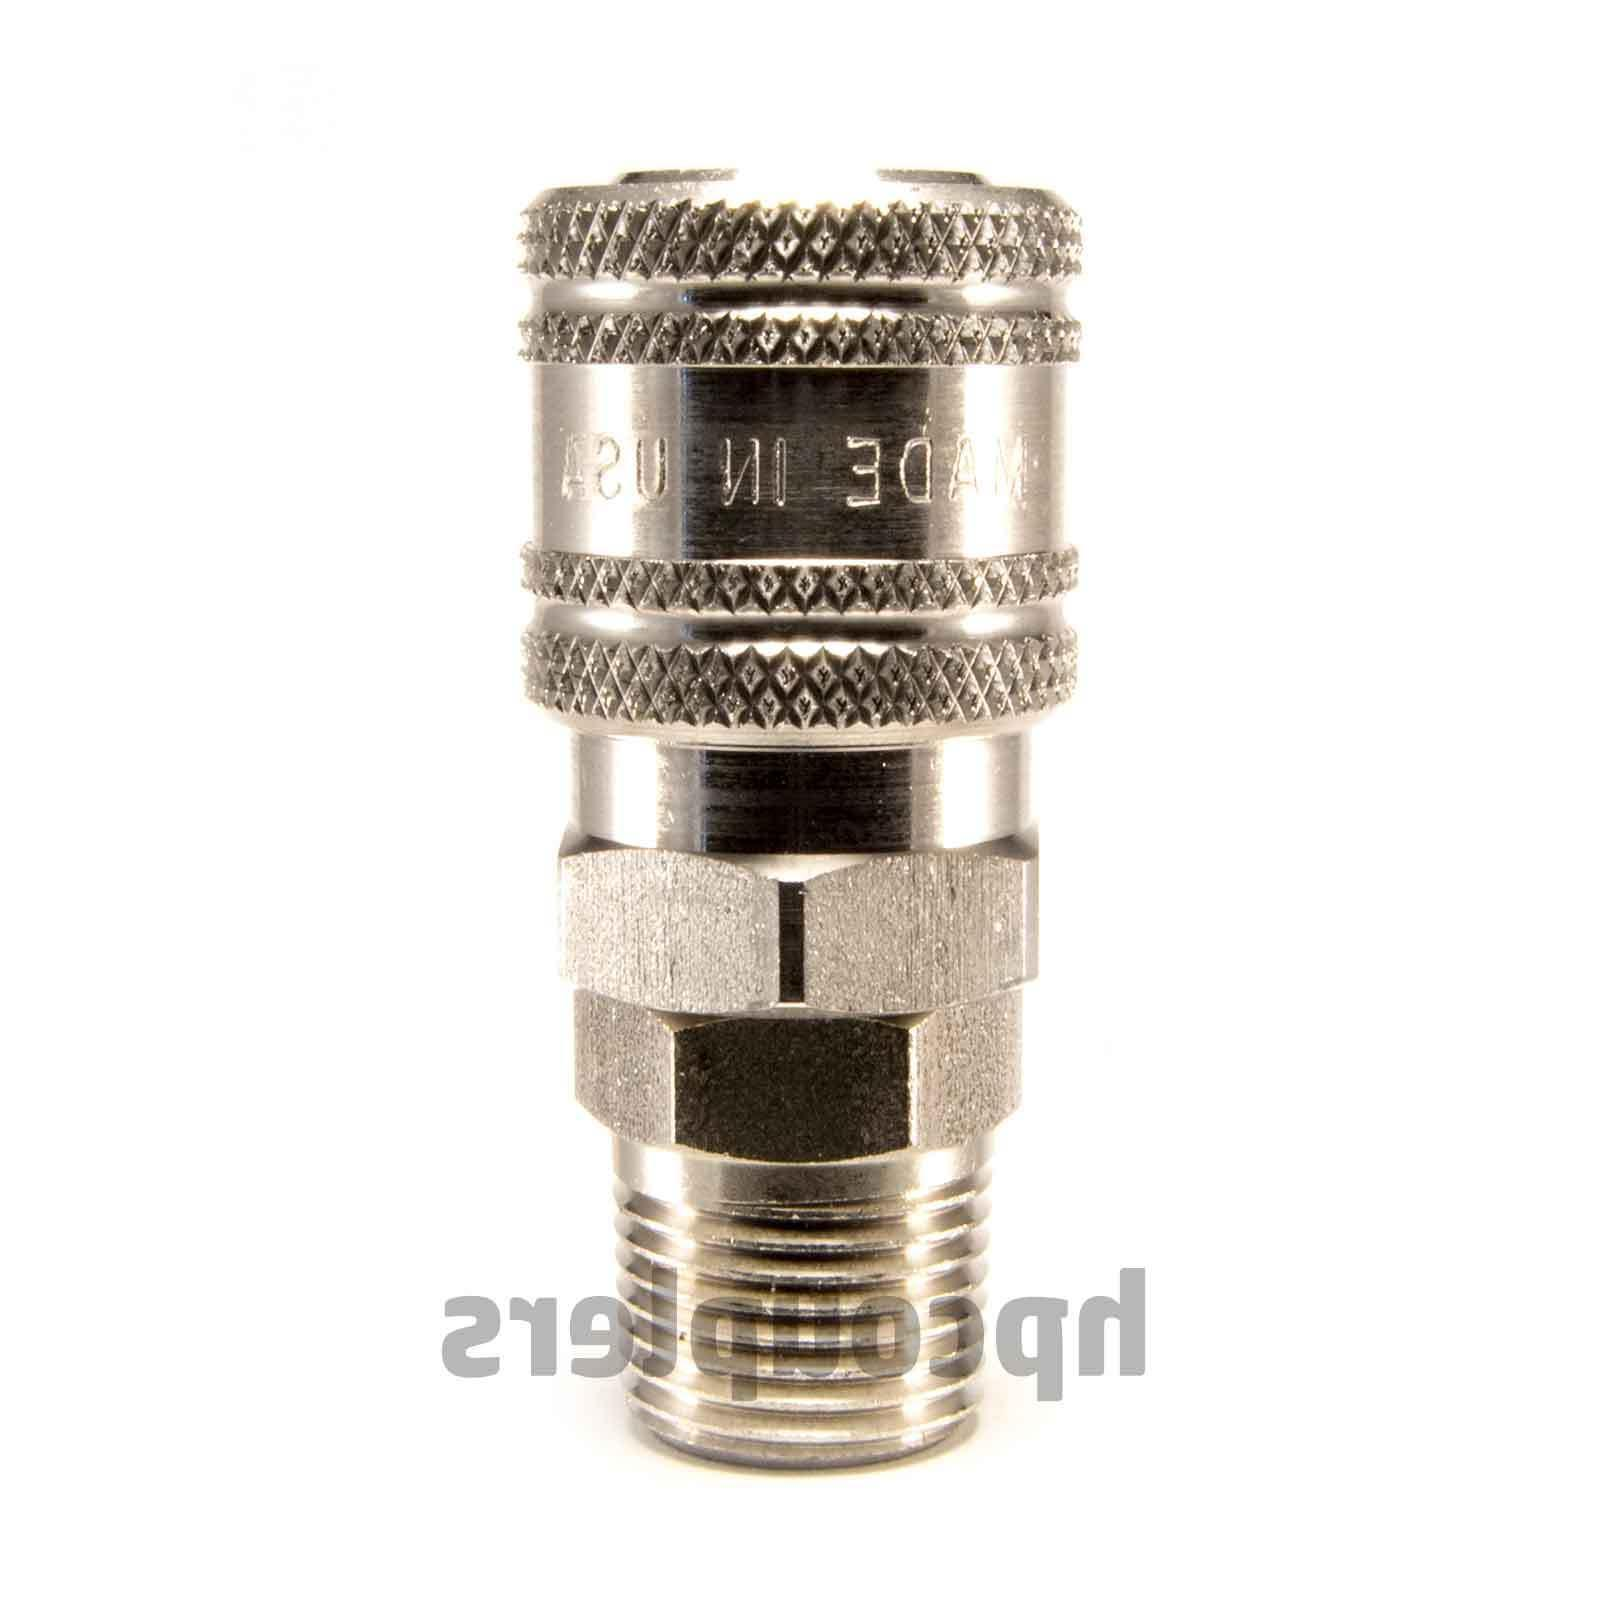 stainless steel 1 4 quick connect coupler